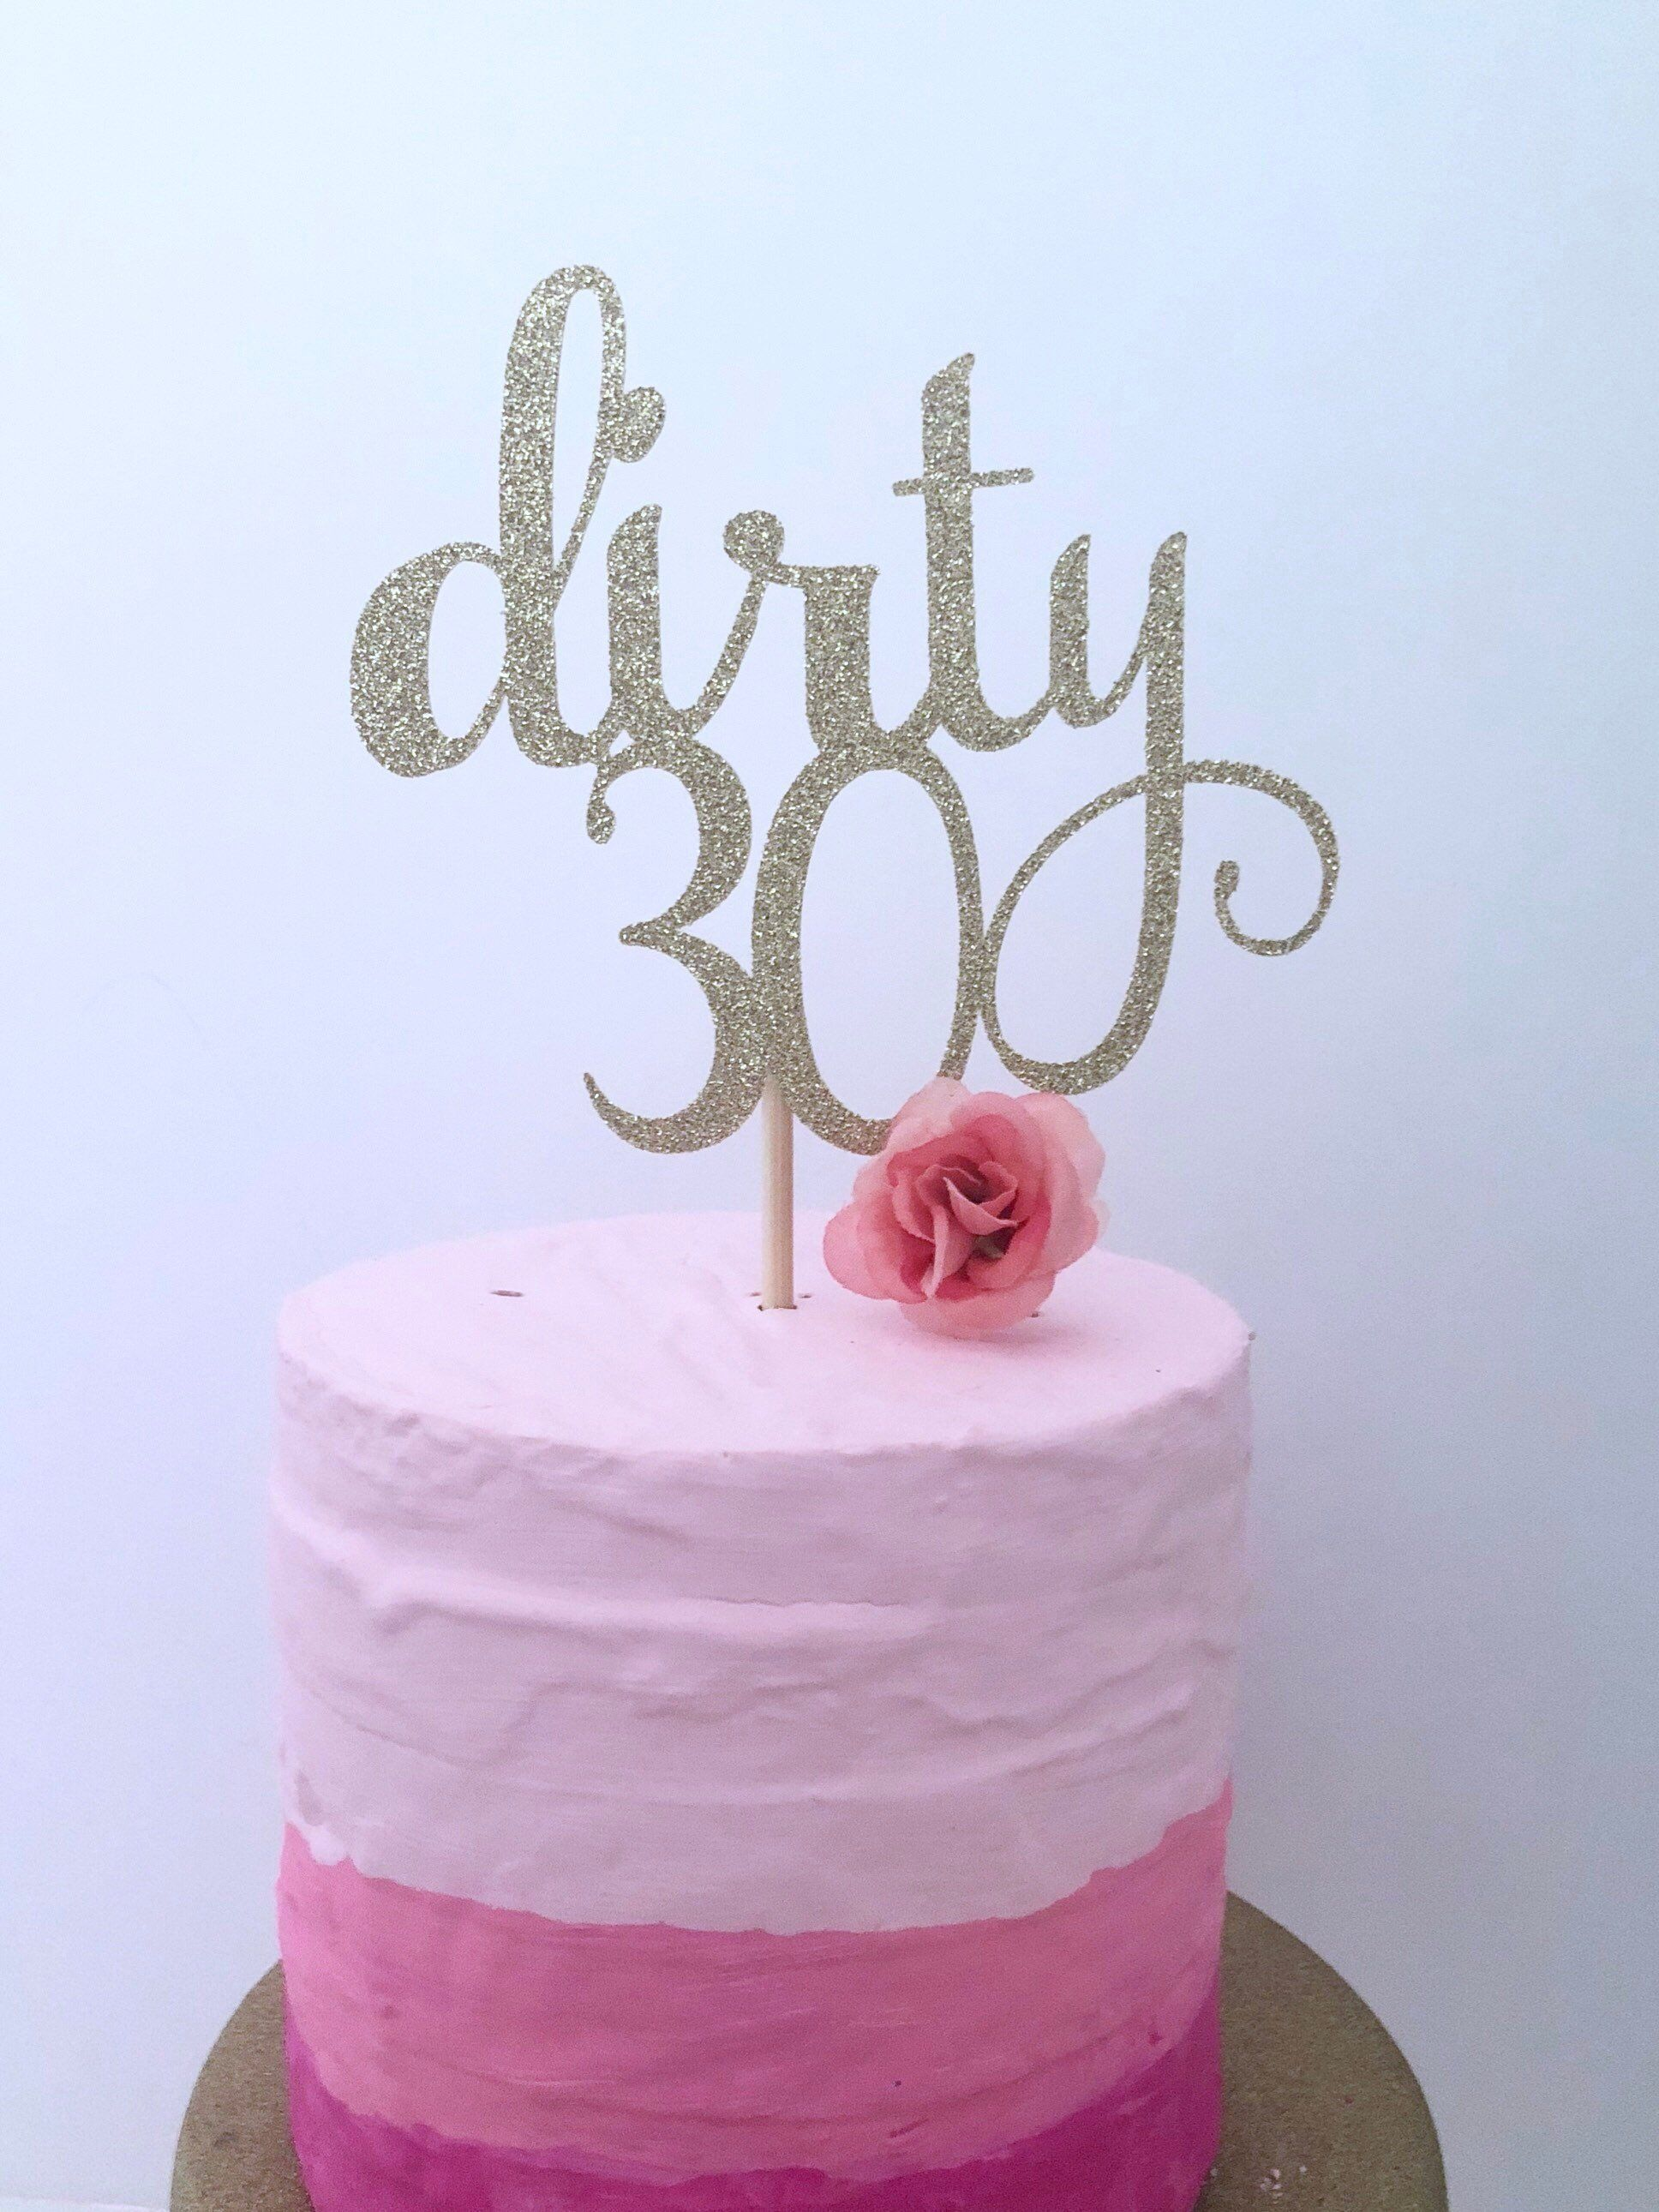 Pin On 30th Birthday Ideas Cake Decor And More